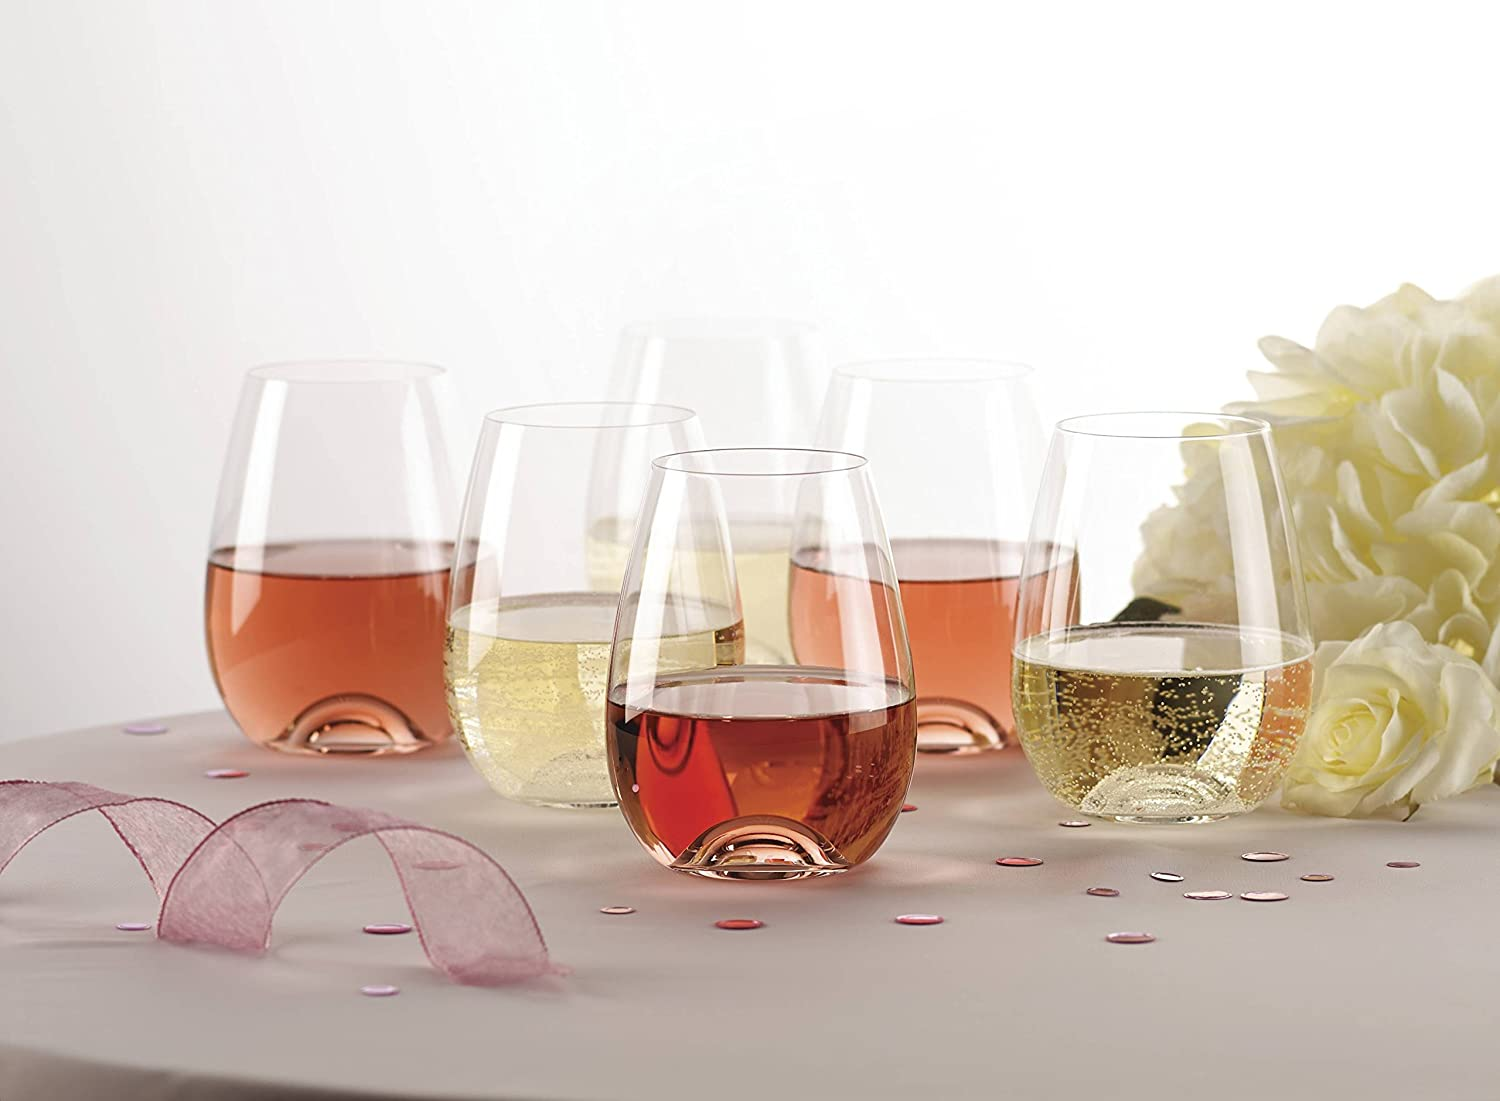 Lenox 6-Piece Stemless Wine Gl...